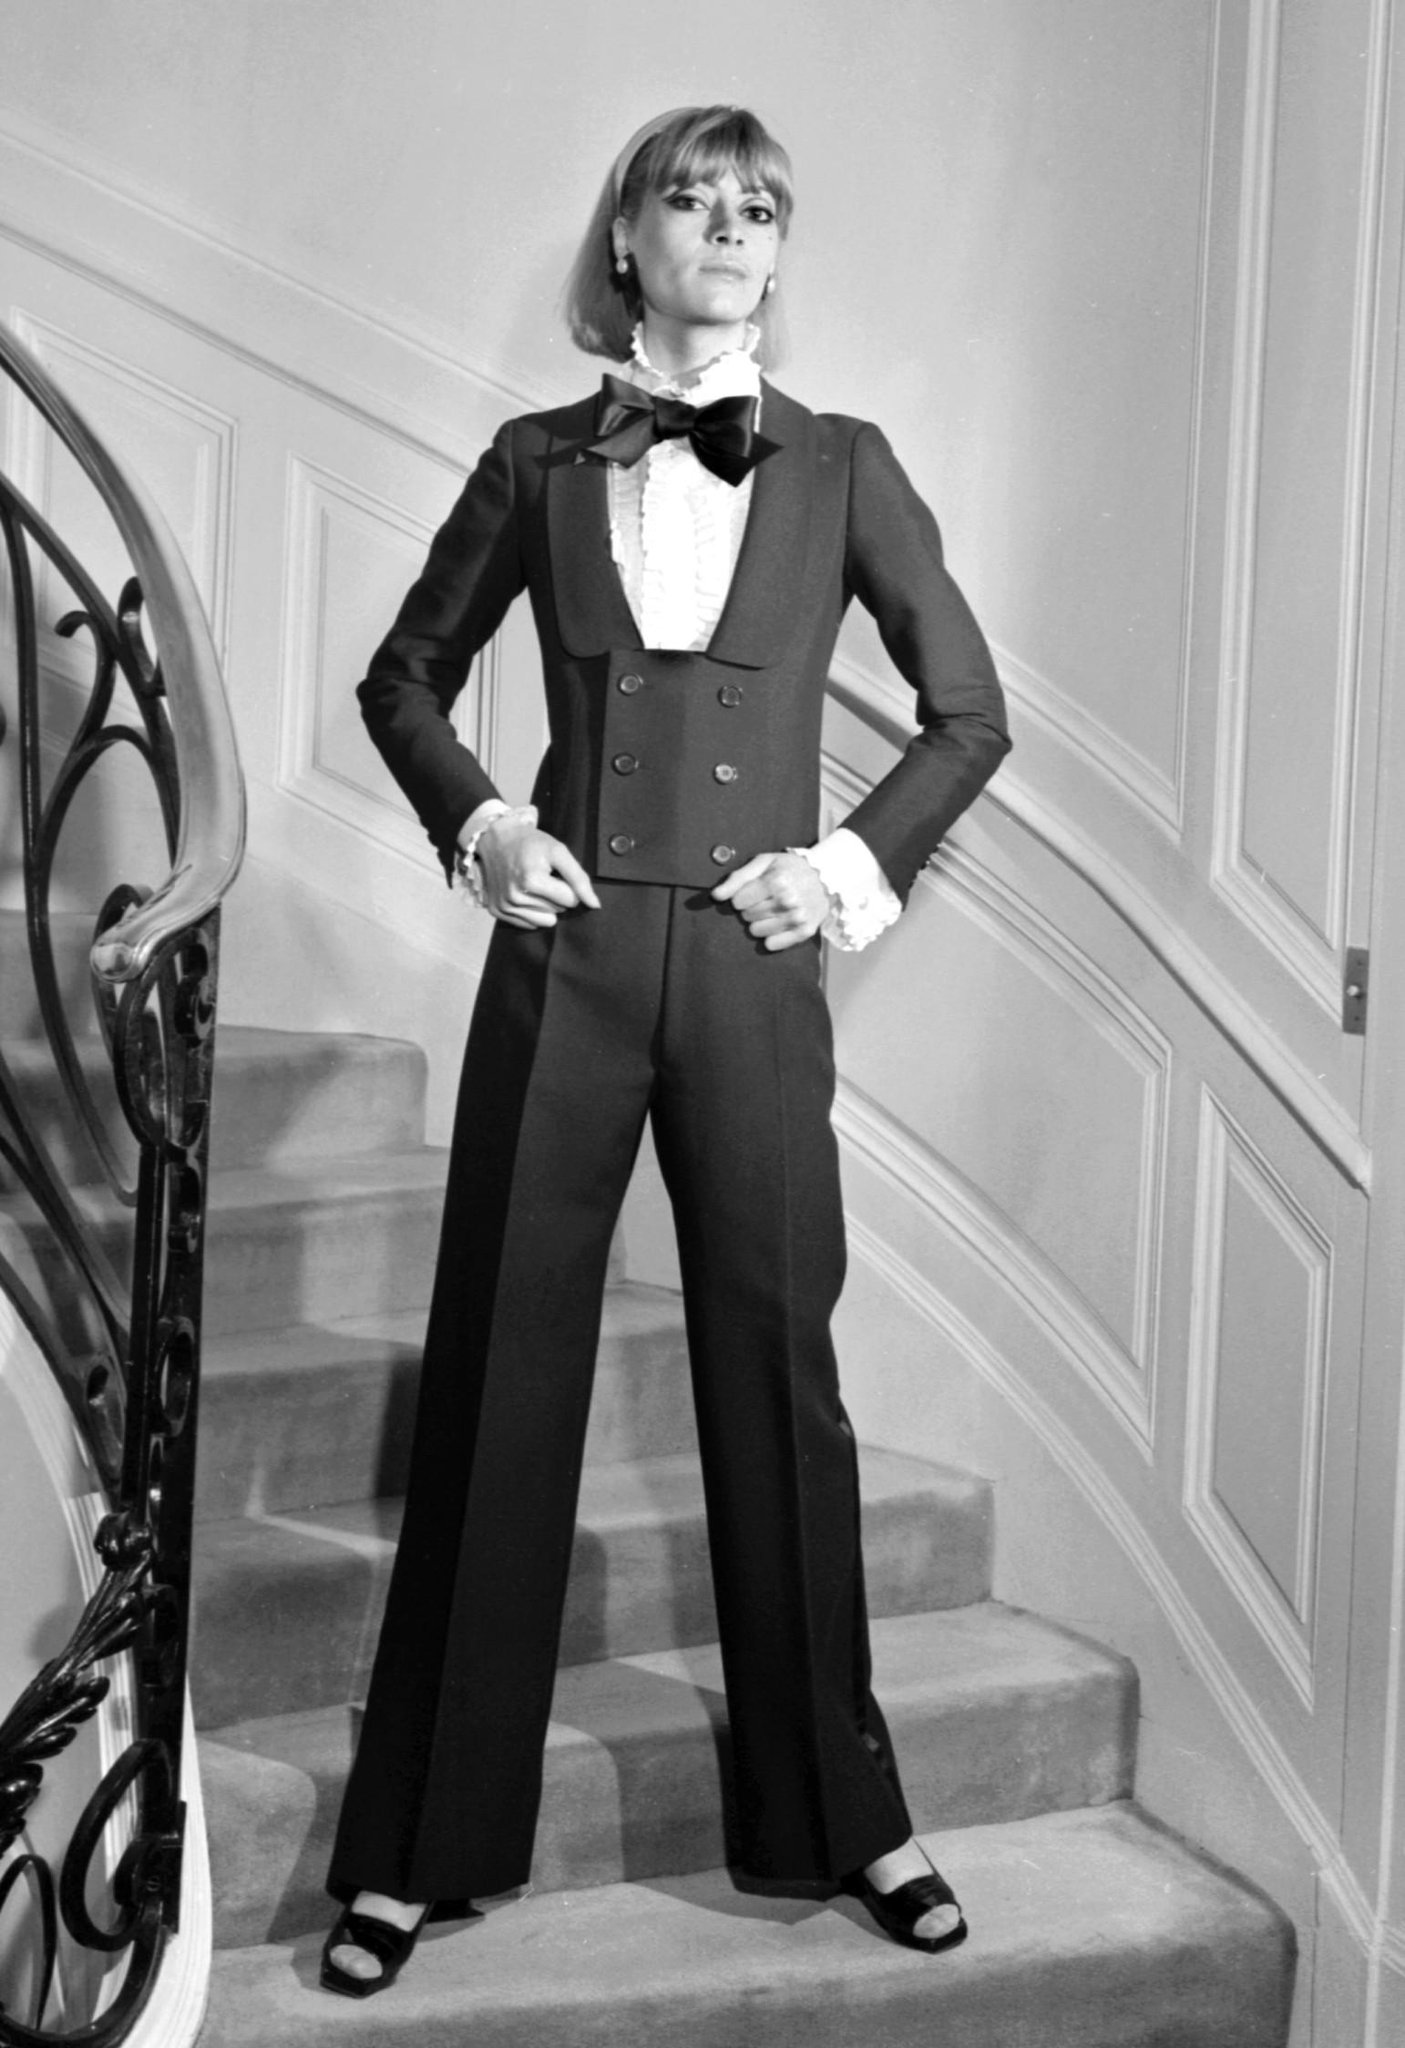 Will @YSL's new couture line be as classically chic as the first? http://t.co/taZN99Gn13 http://t.co/JflJKAWWyr